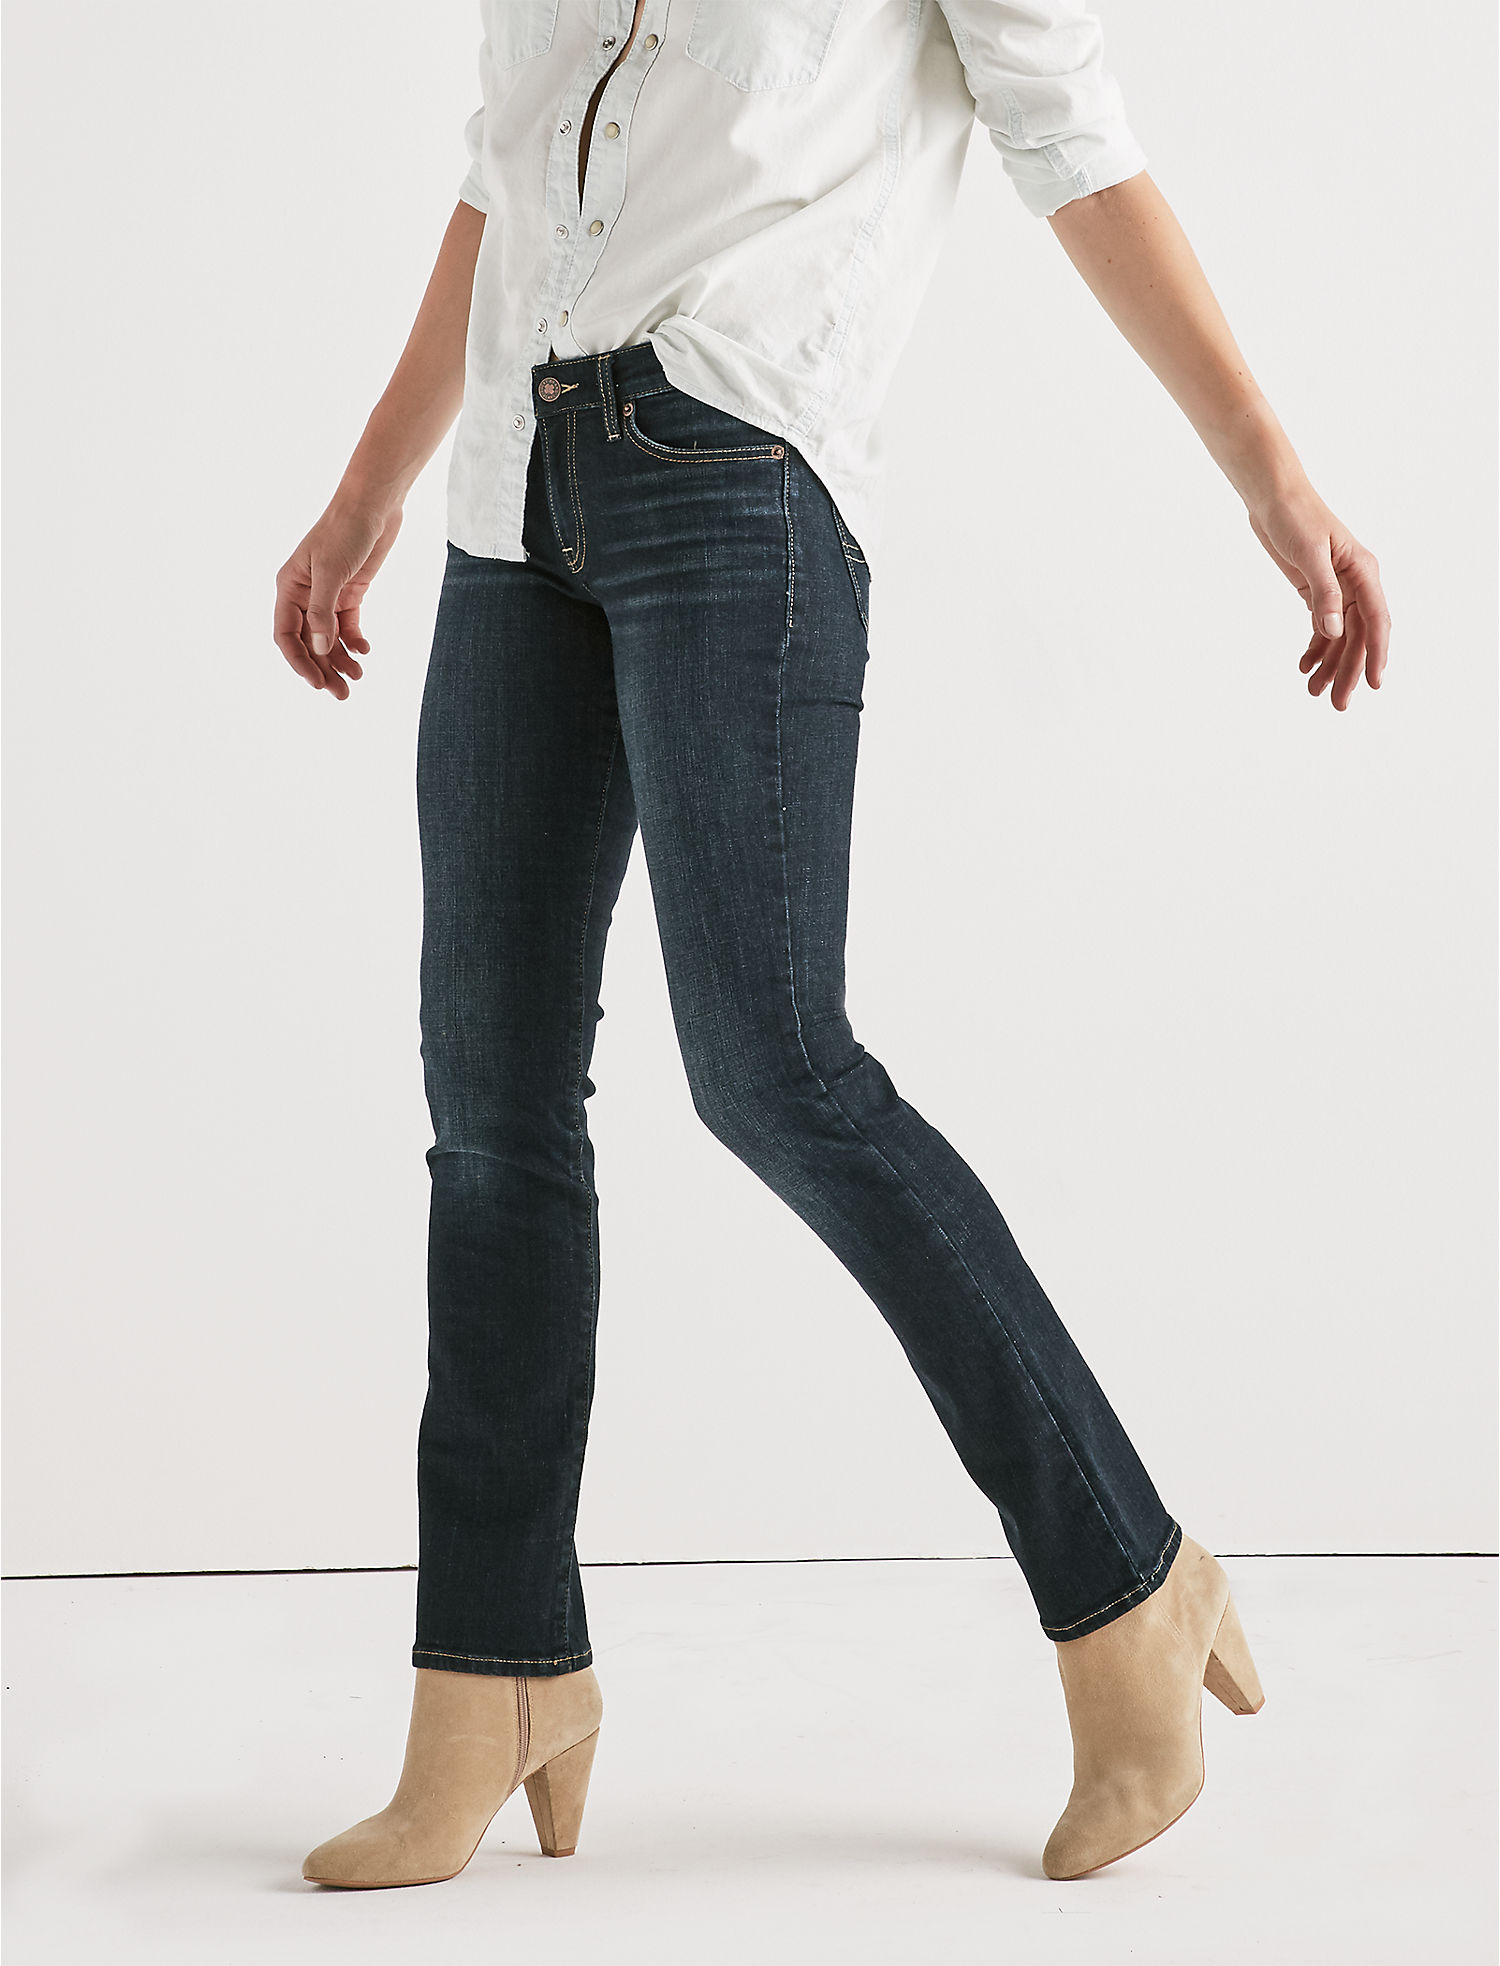 8a2c91bdee Shop By Rise at Lucky Brand Jeans